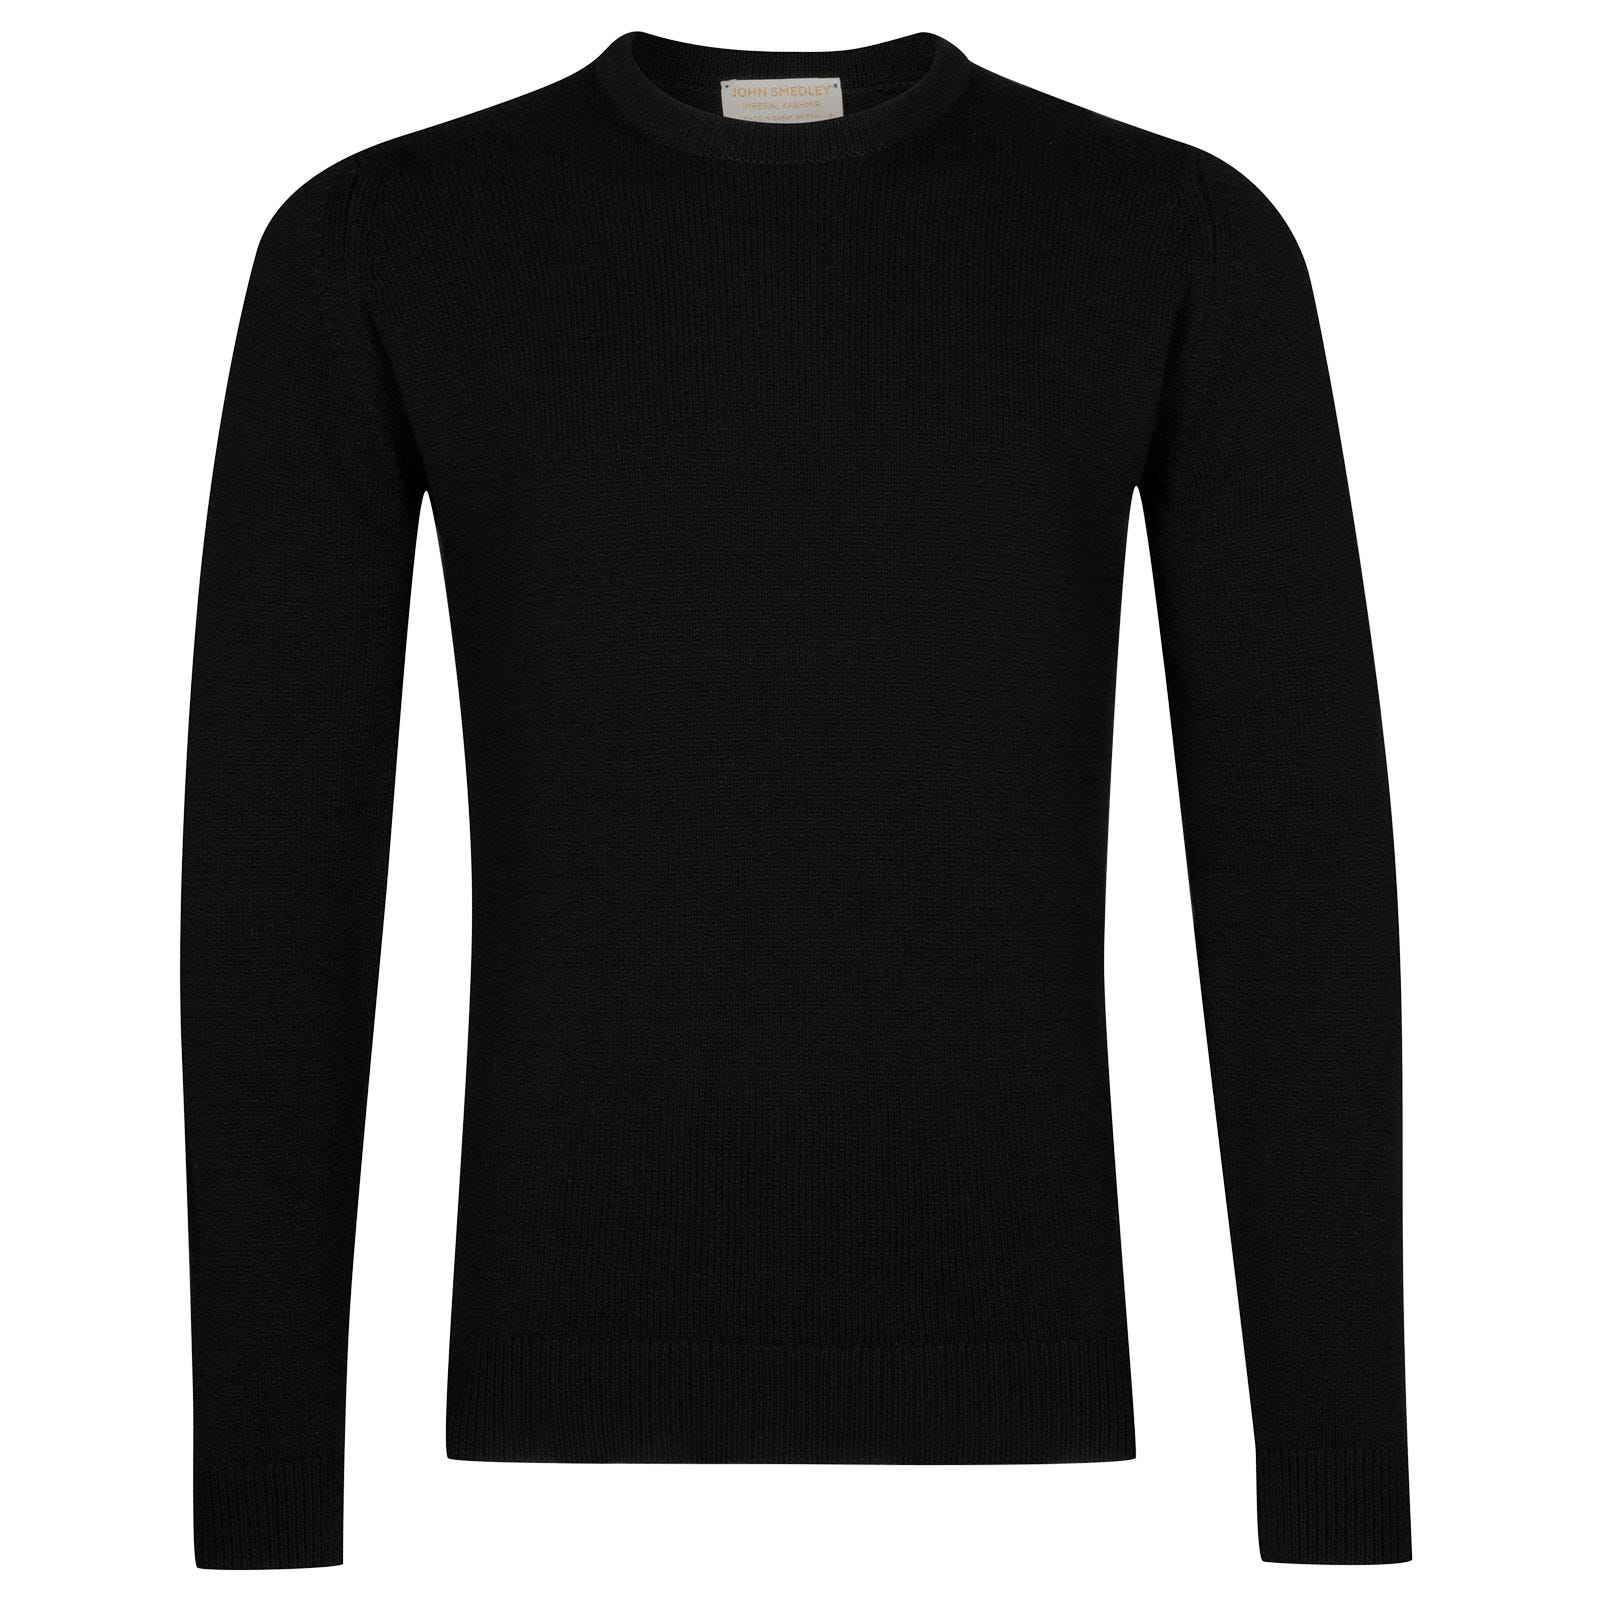 John Smedley Crowford Wool and Cashmere Pullover in Black-S